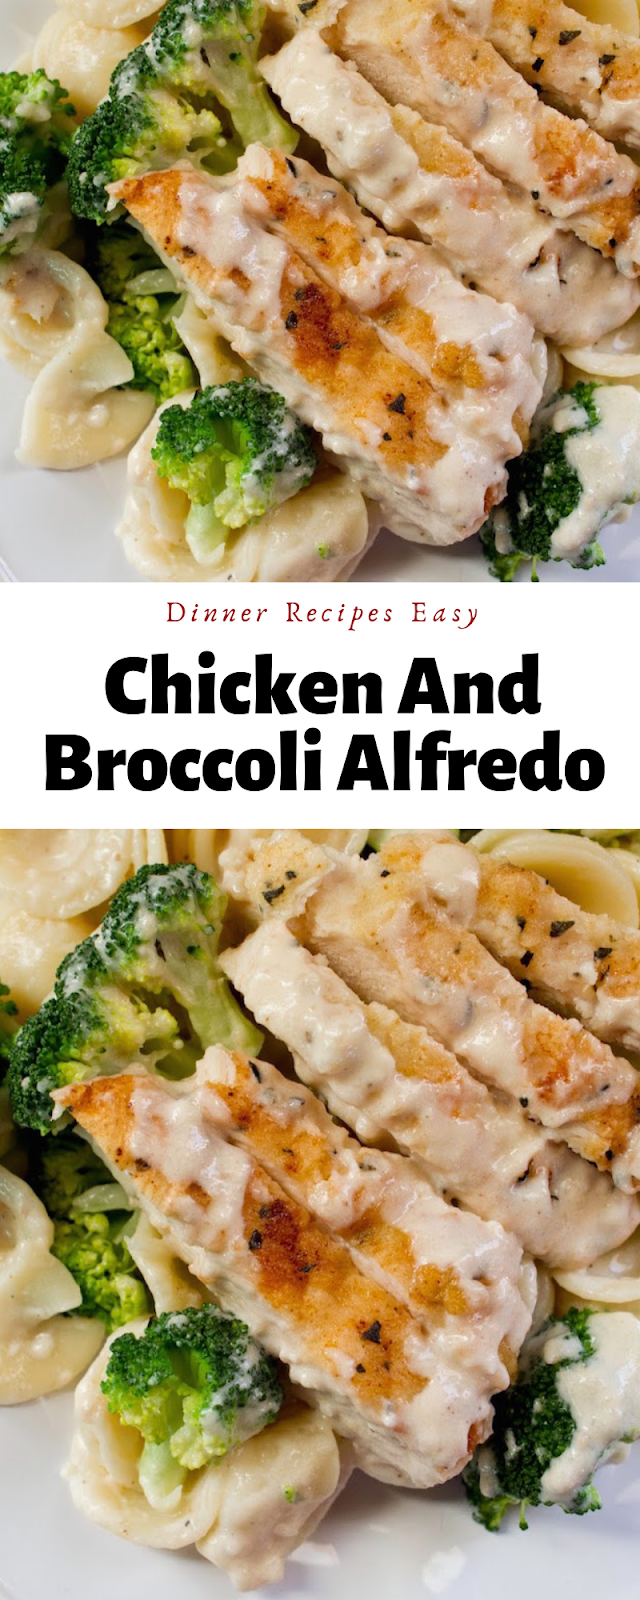 Dinner Recipes Easy | Chicken And Broccoli Alfredo #chickenbreastrecipeseasy